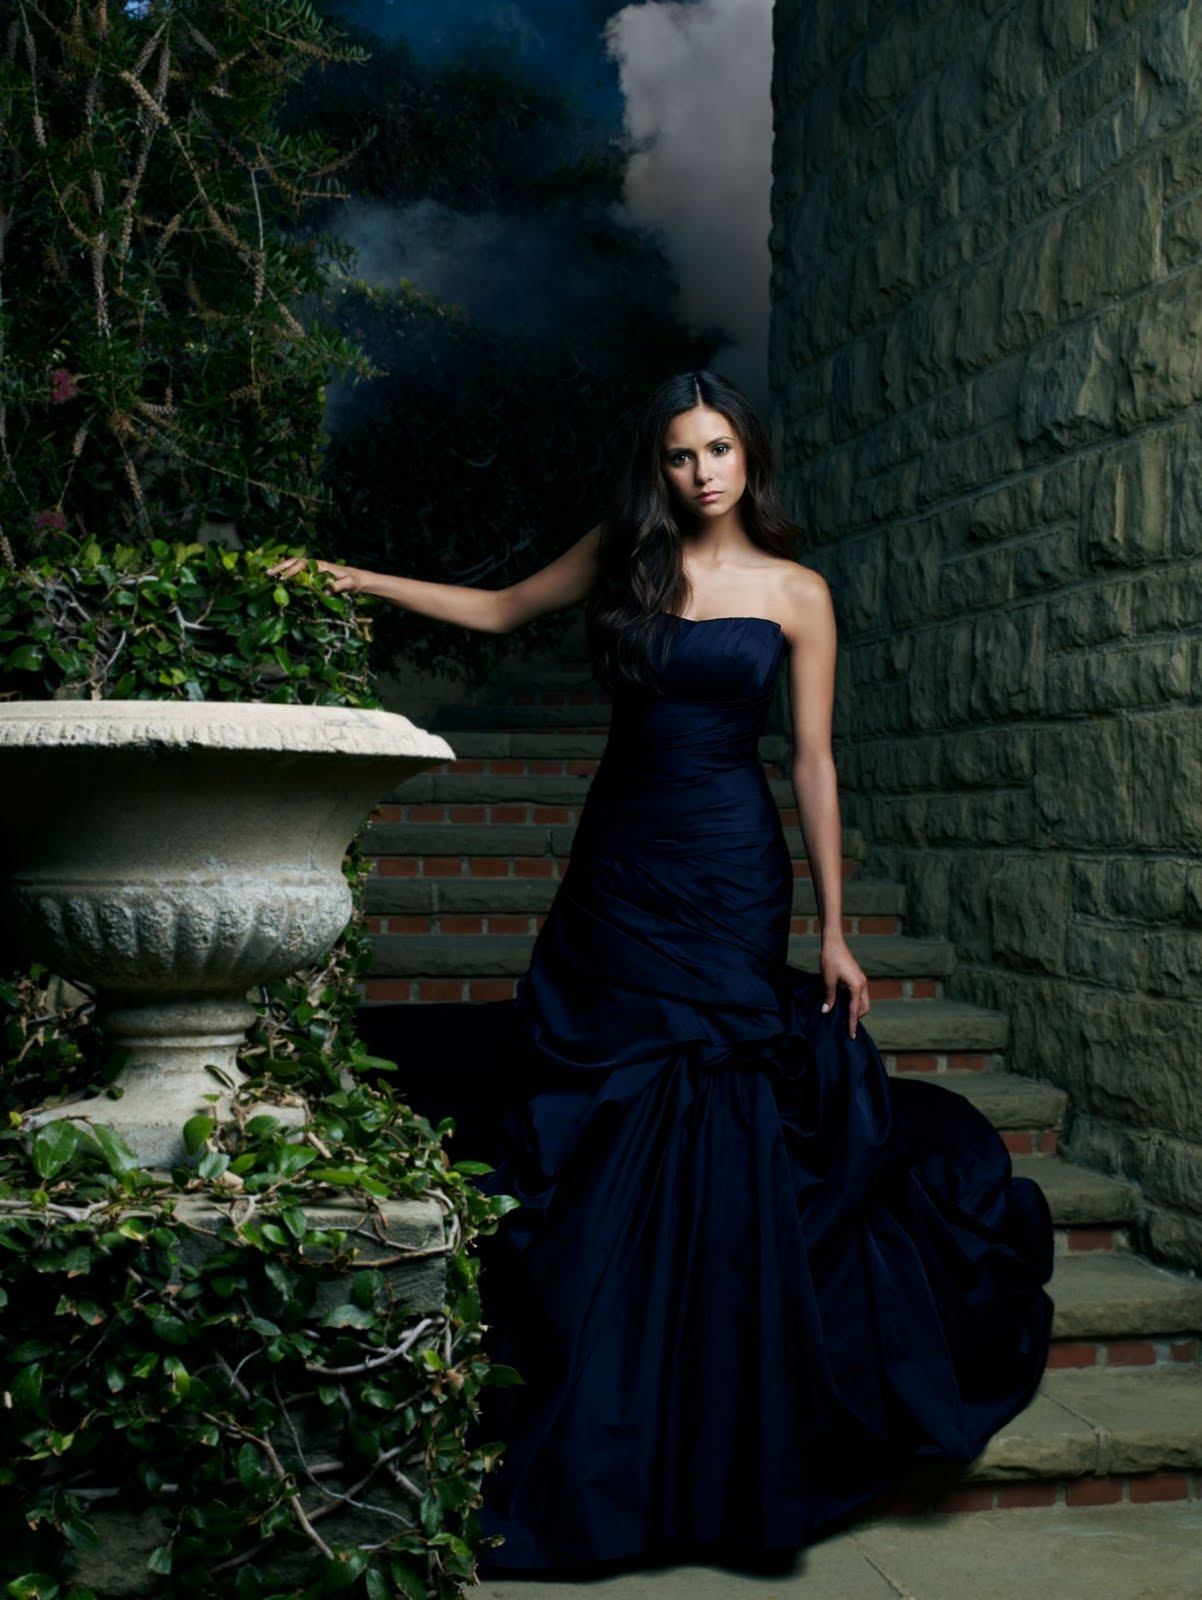 http://3.bp.blogspot.com/-46Jlh9bW7JE/TjxJBSm6XFI/AAAAAAAAAcY/JNLwd1OPpbY/s1600/Nina-Dobrev-Photoshoot-HQ-the-vampire-diaries-tv-show-15031313-1536-2045.jpg